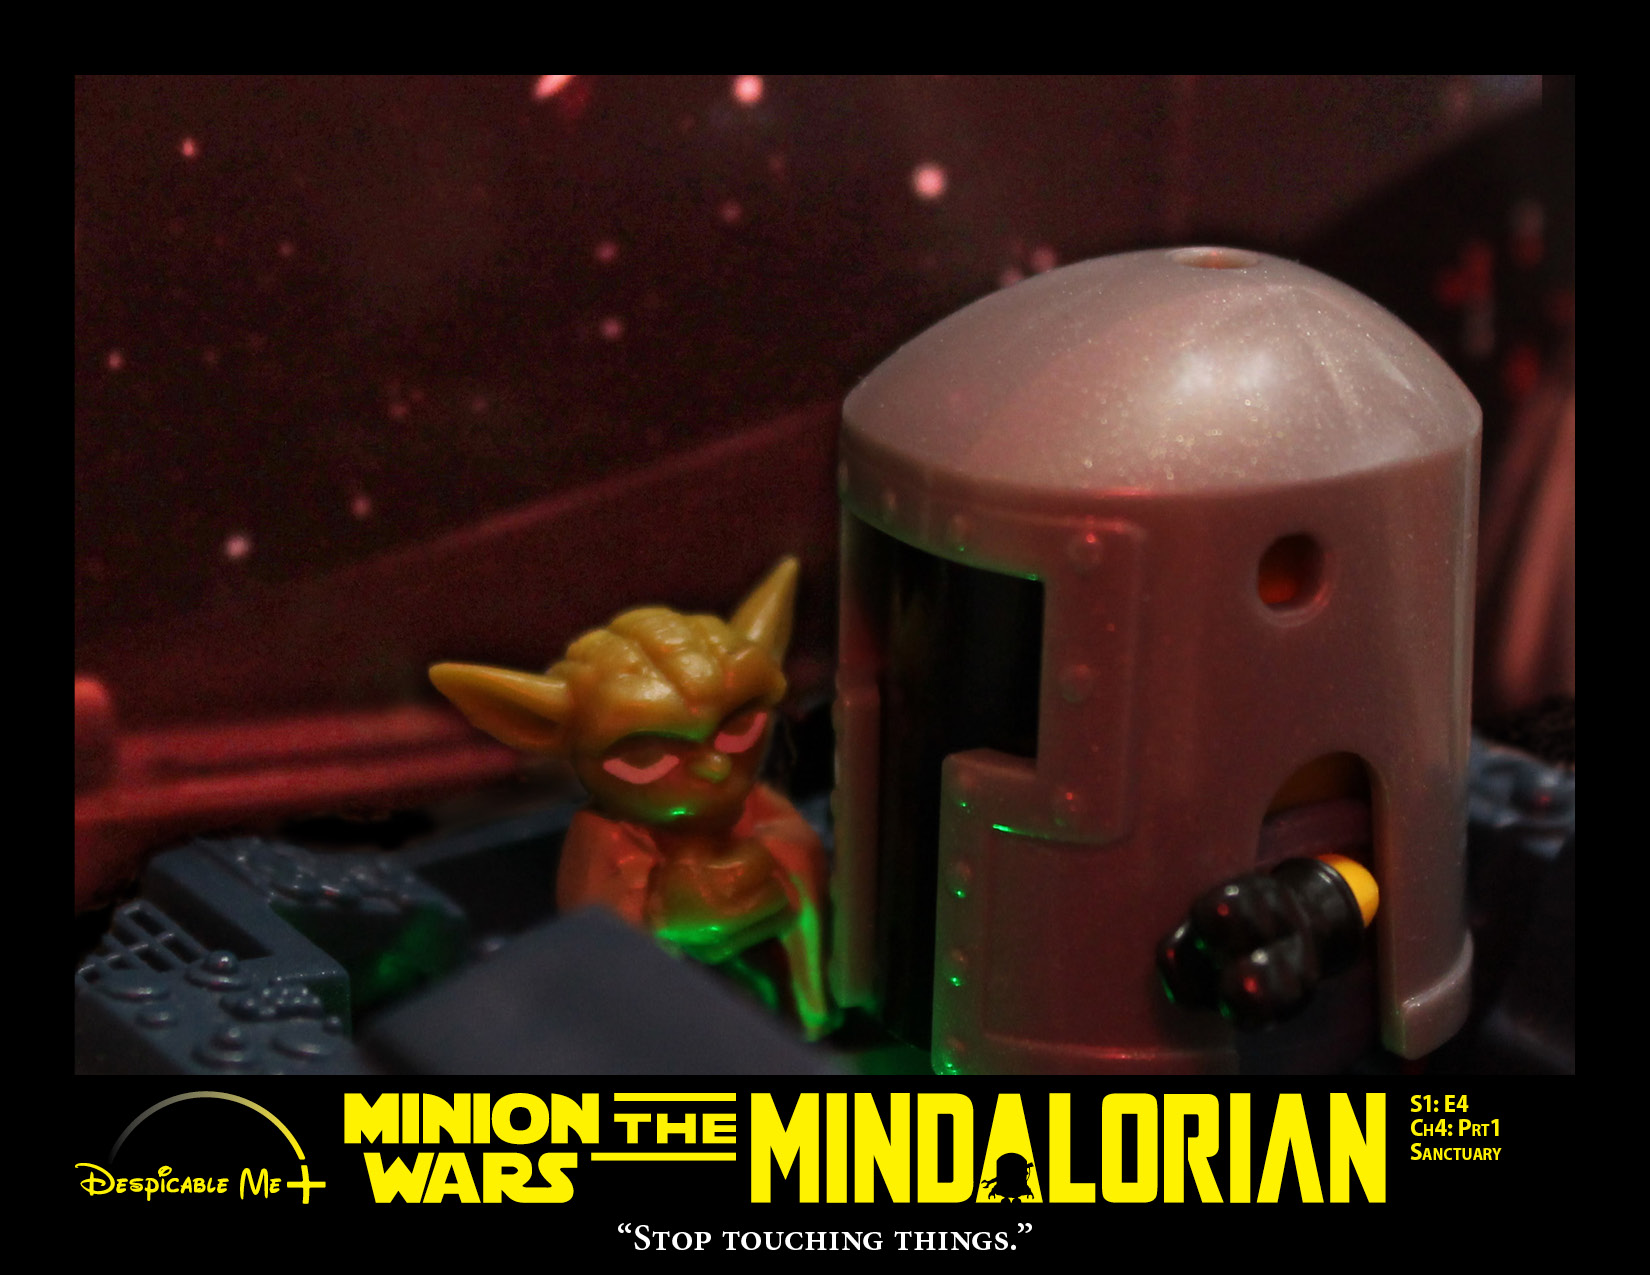 The Mindalorian sit in the cockpit of The Razor Crest and tells baby Yoda to stop touching things.